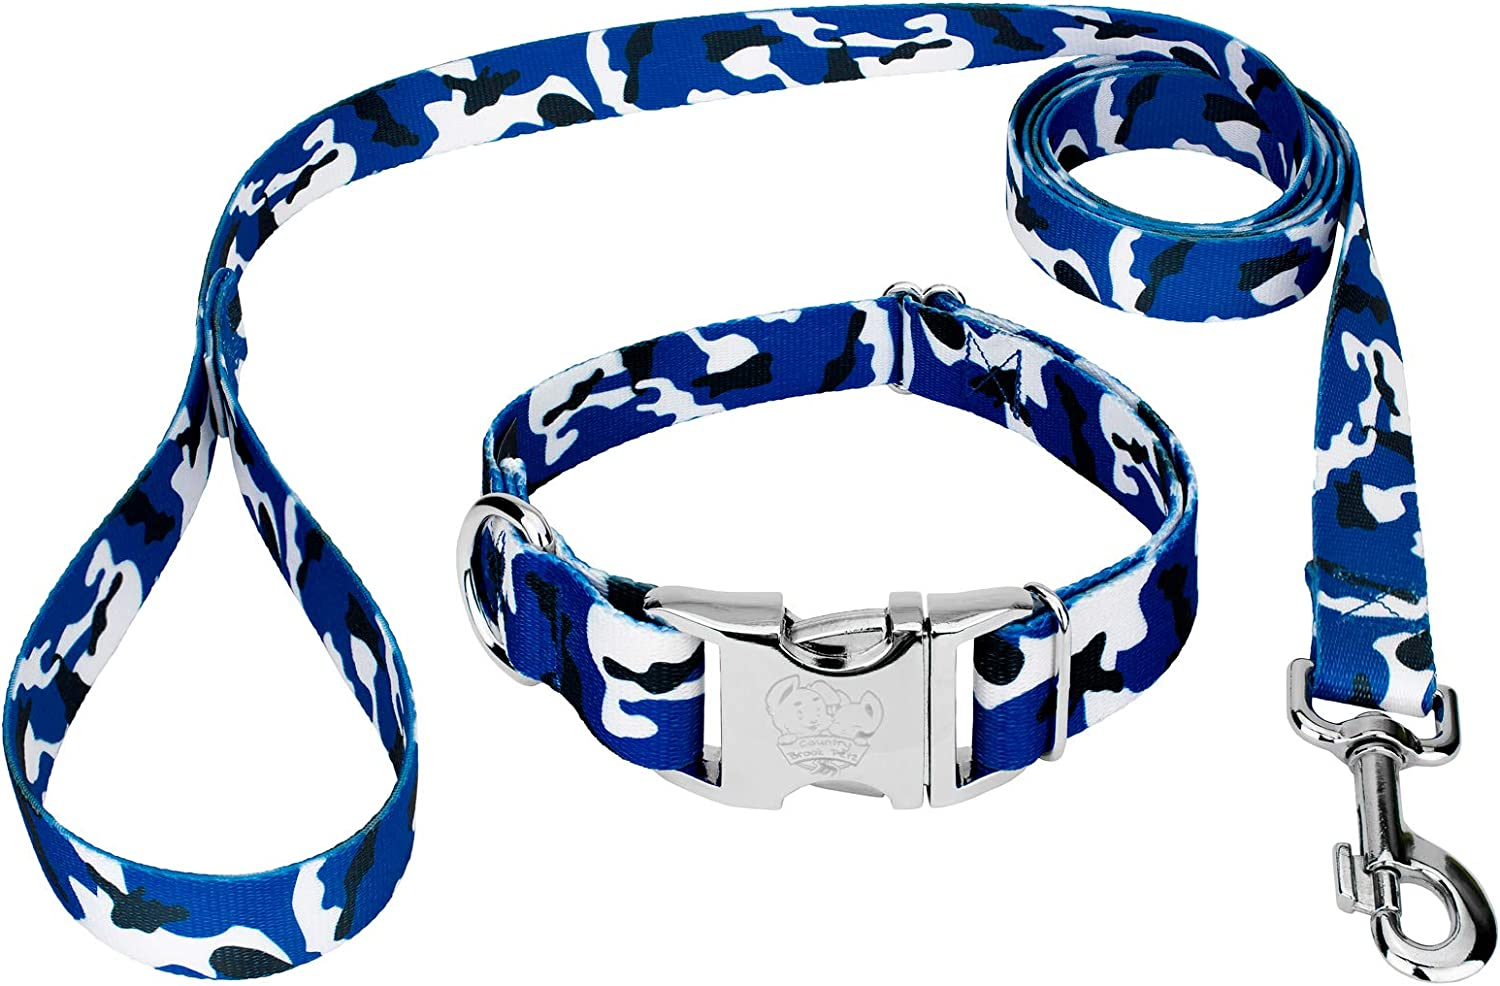 trust ! Super beauty product restock quality top! Country Brook Petz - Premium Athleti Leash and Collar Sports